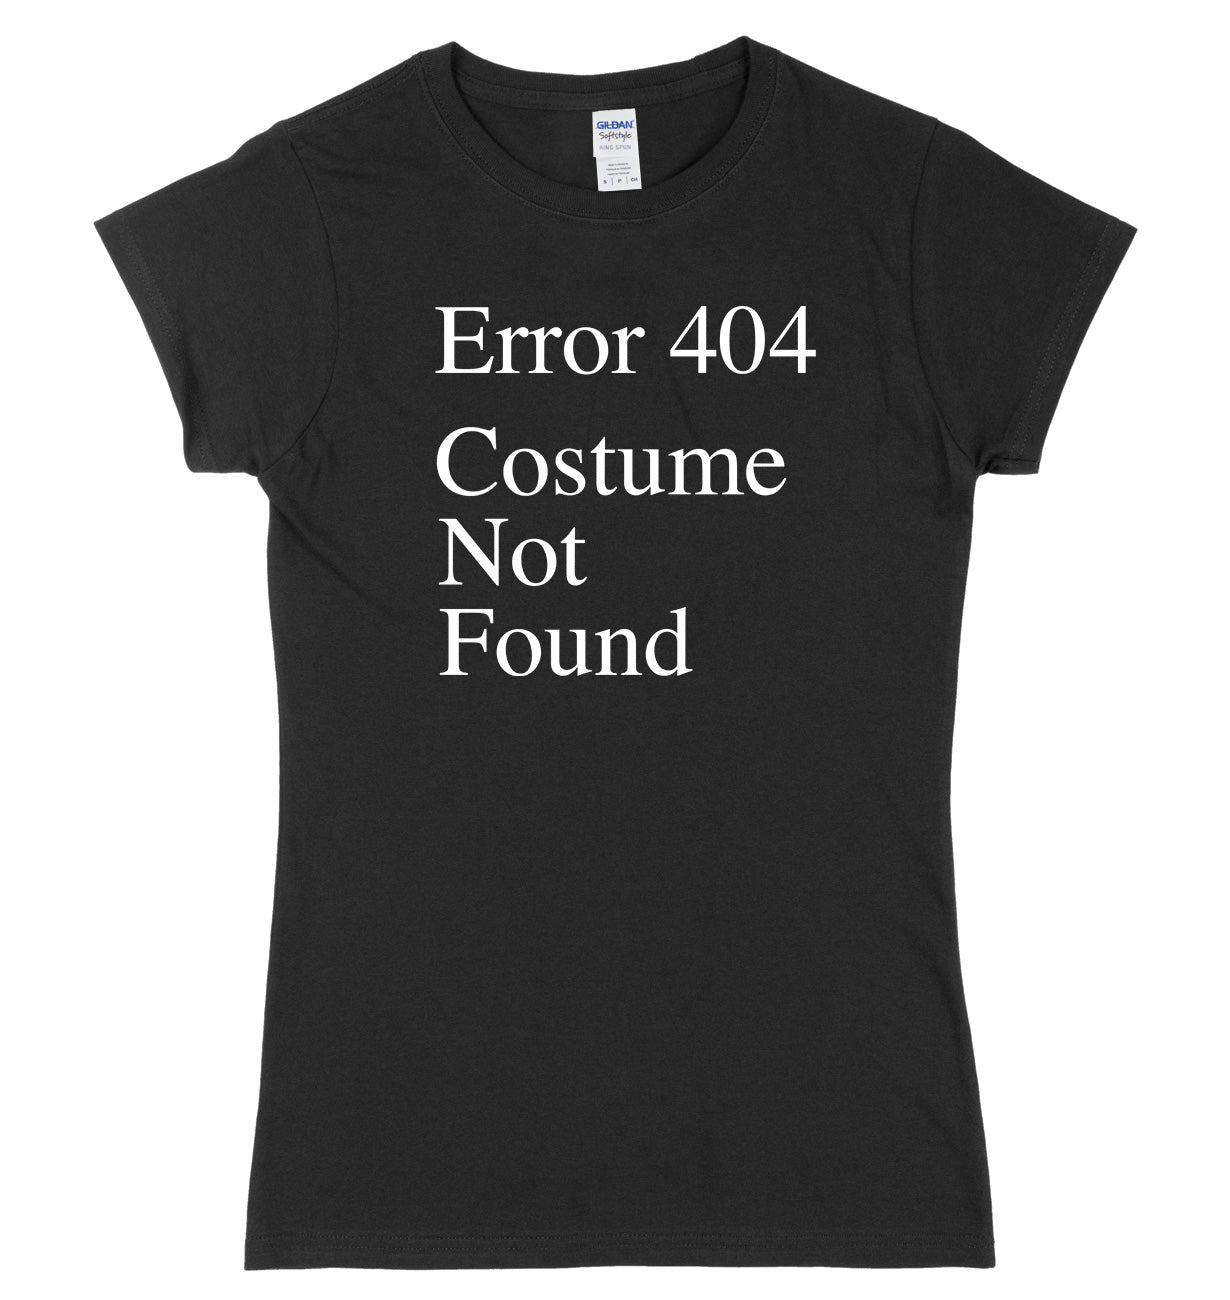 Error 404 Costume Not Found Womens Ladies Slim Fit Halloween T-Shirt